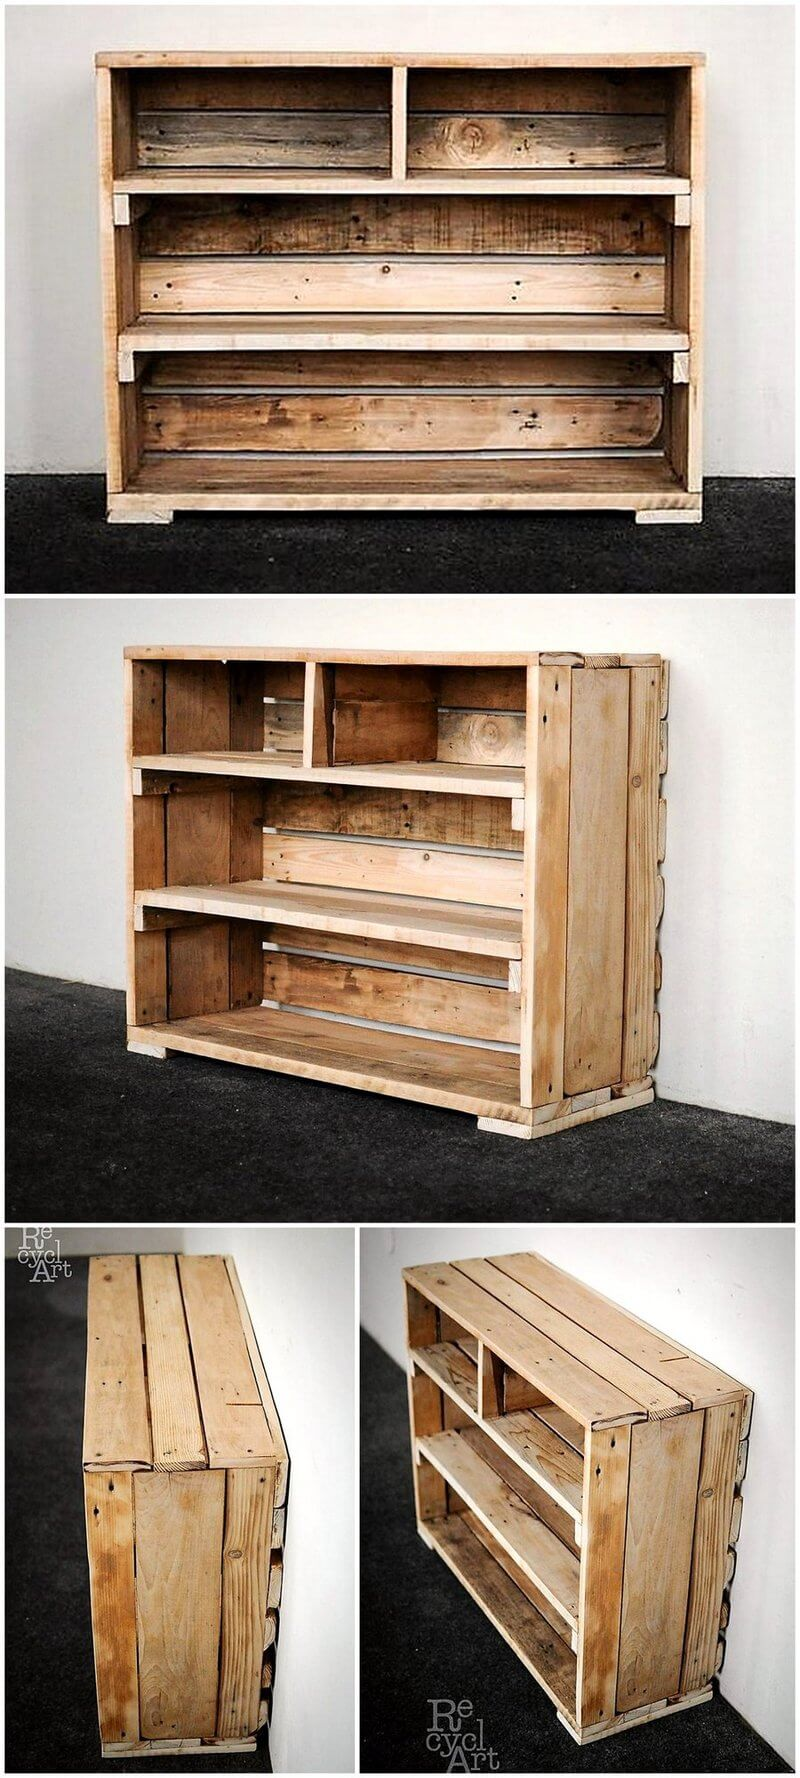 pallet fruit crates made shelving table